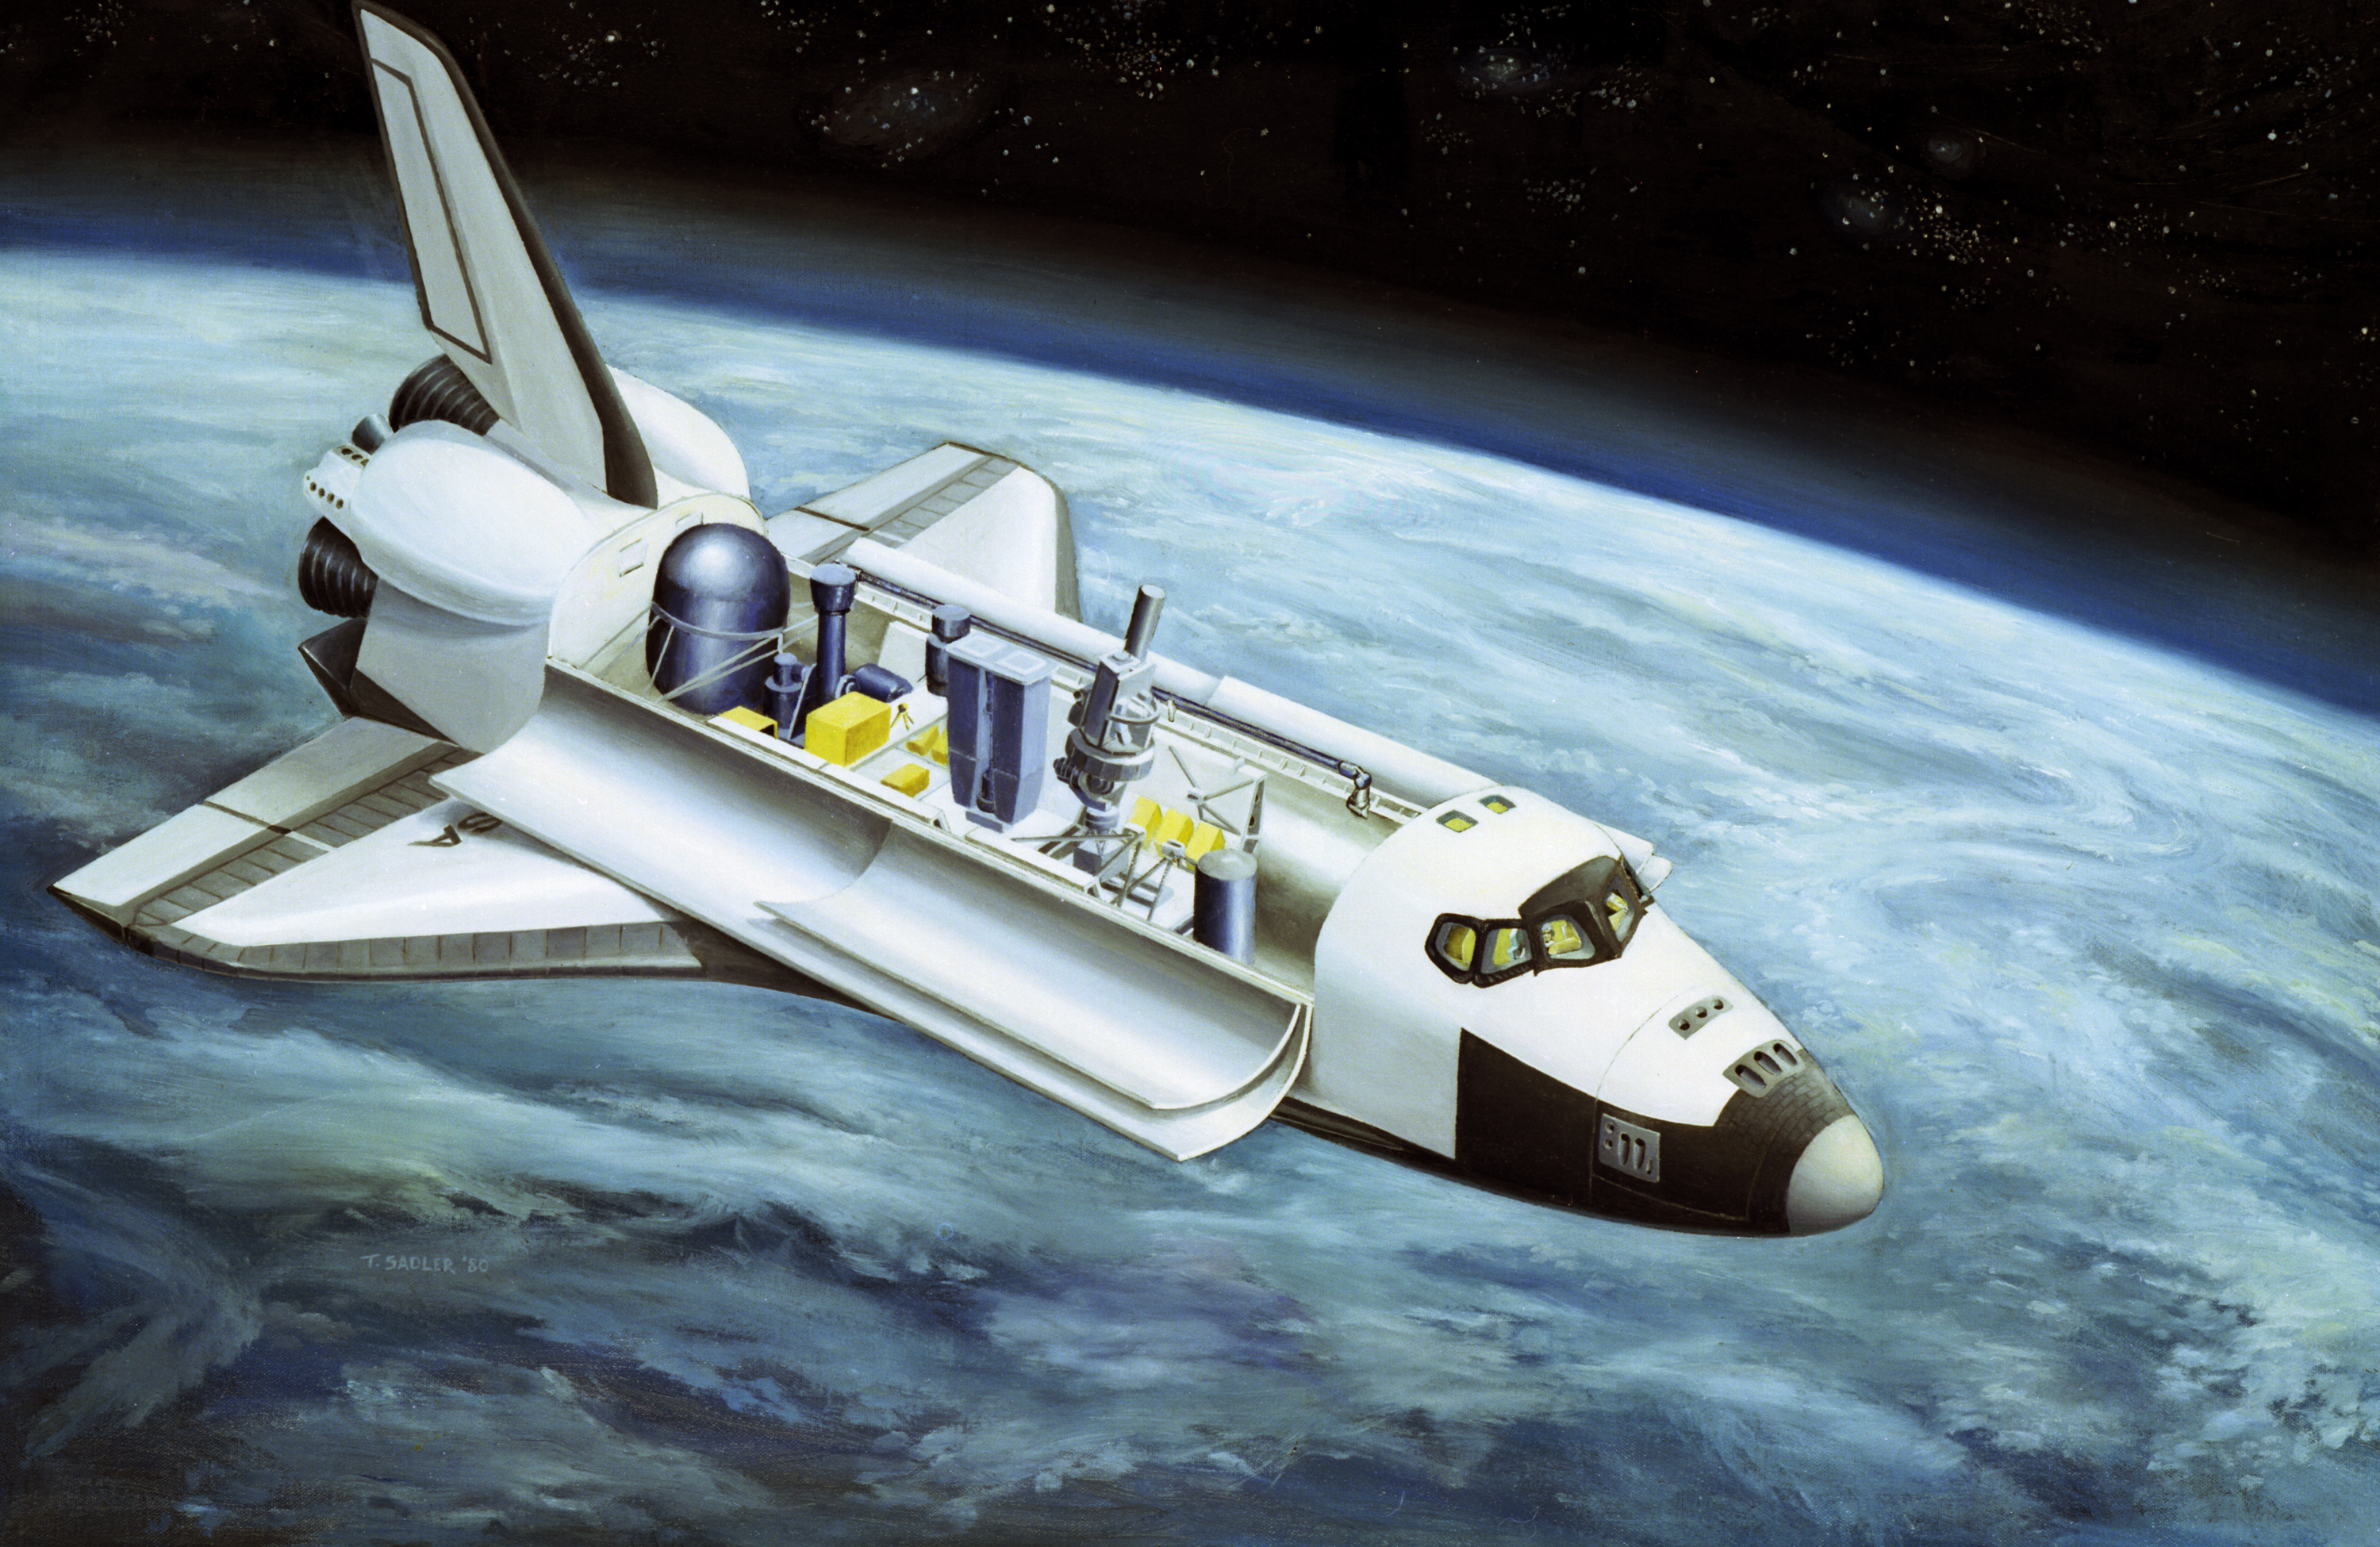 why us stopped space shuttle program - photo #46